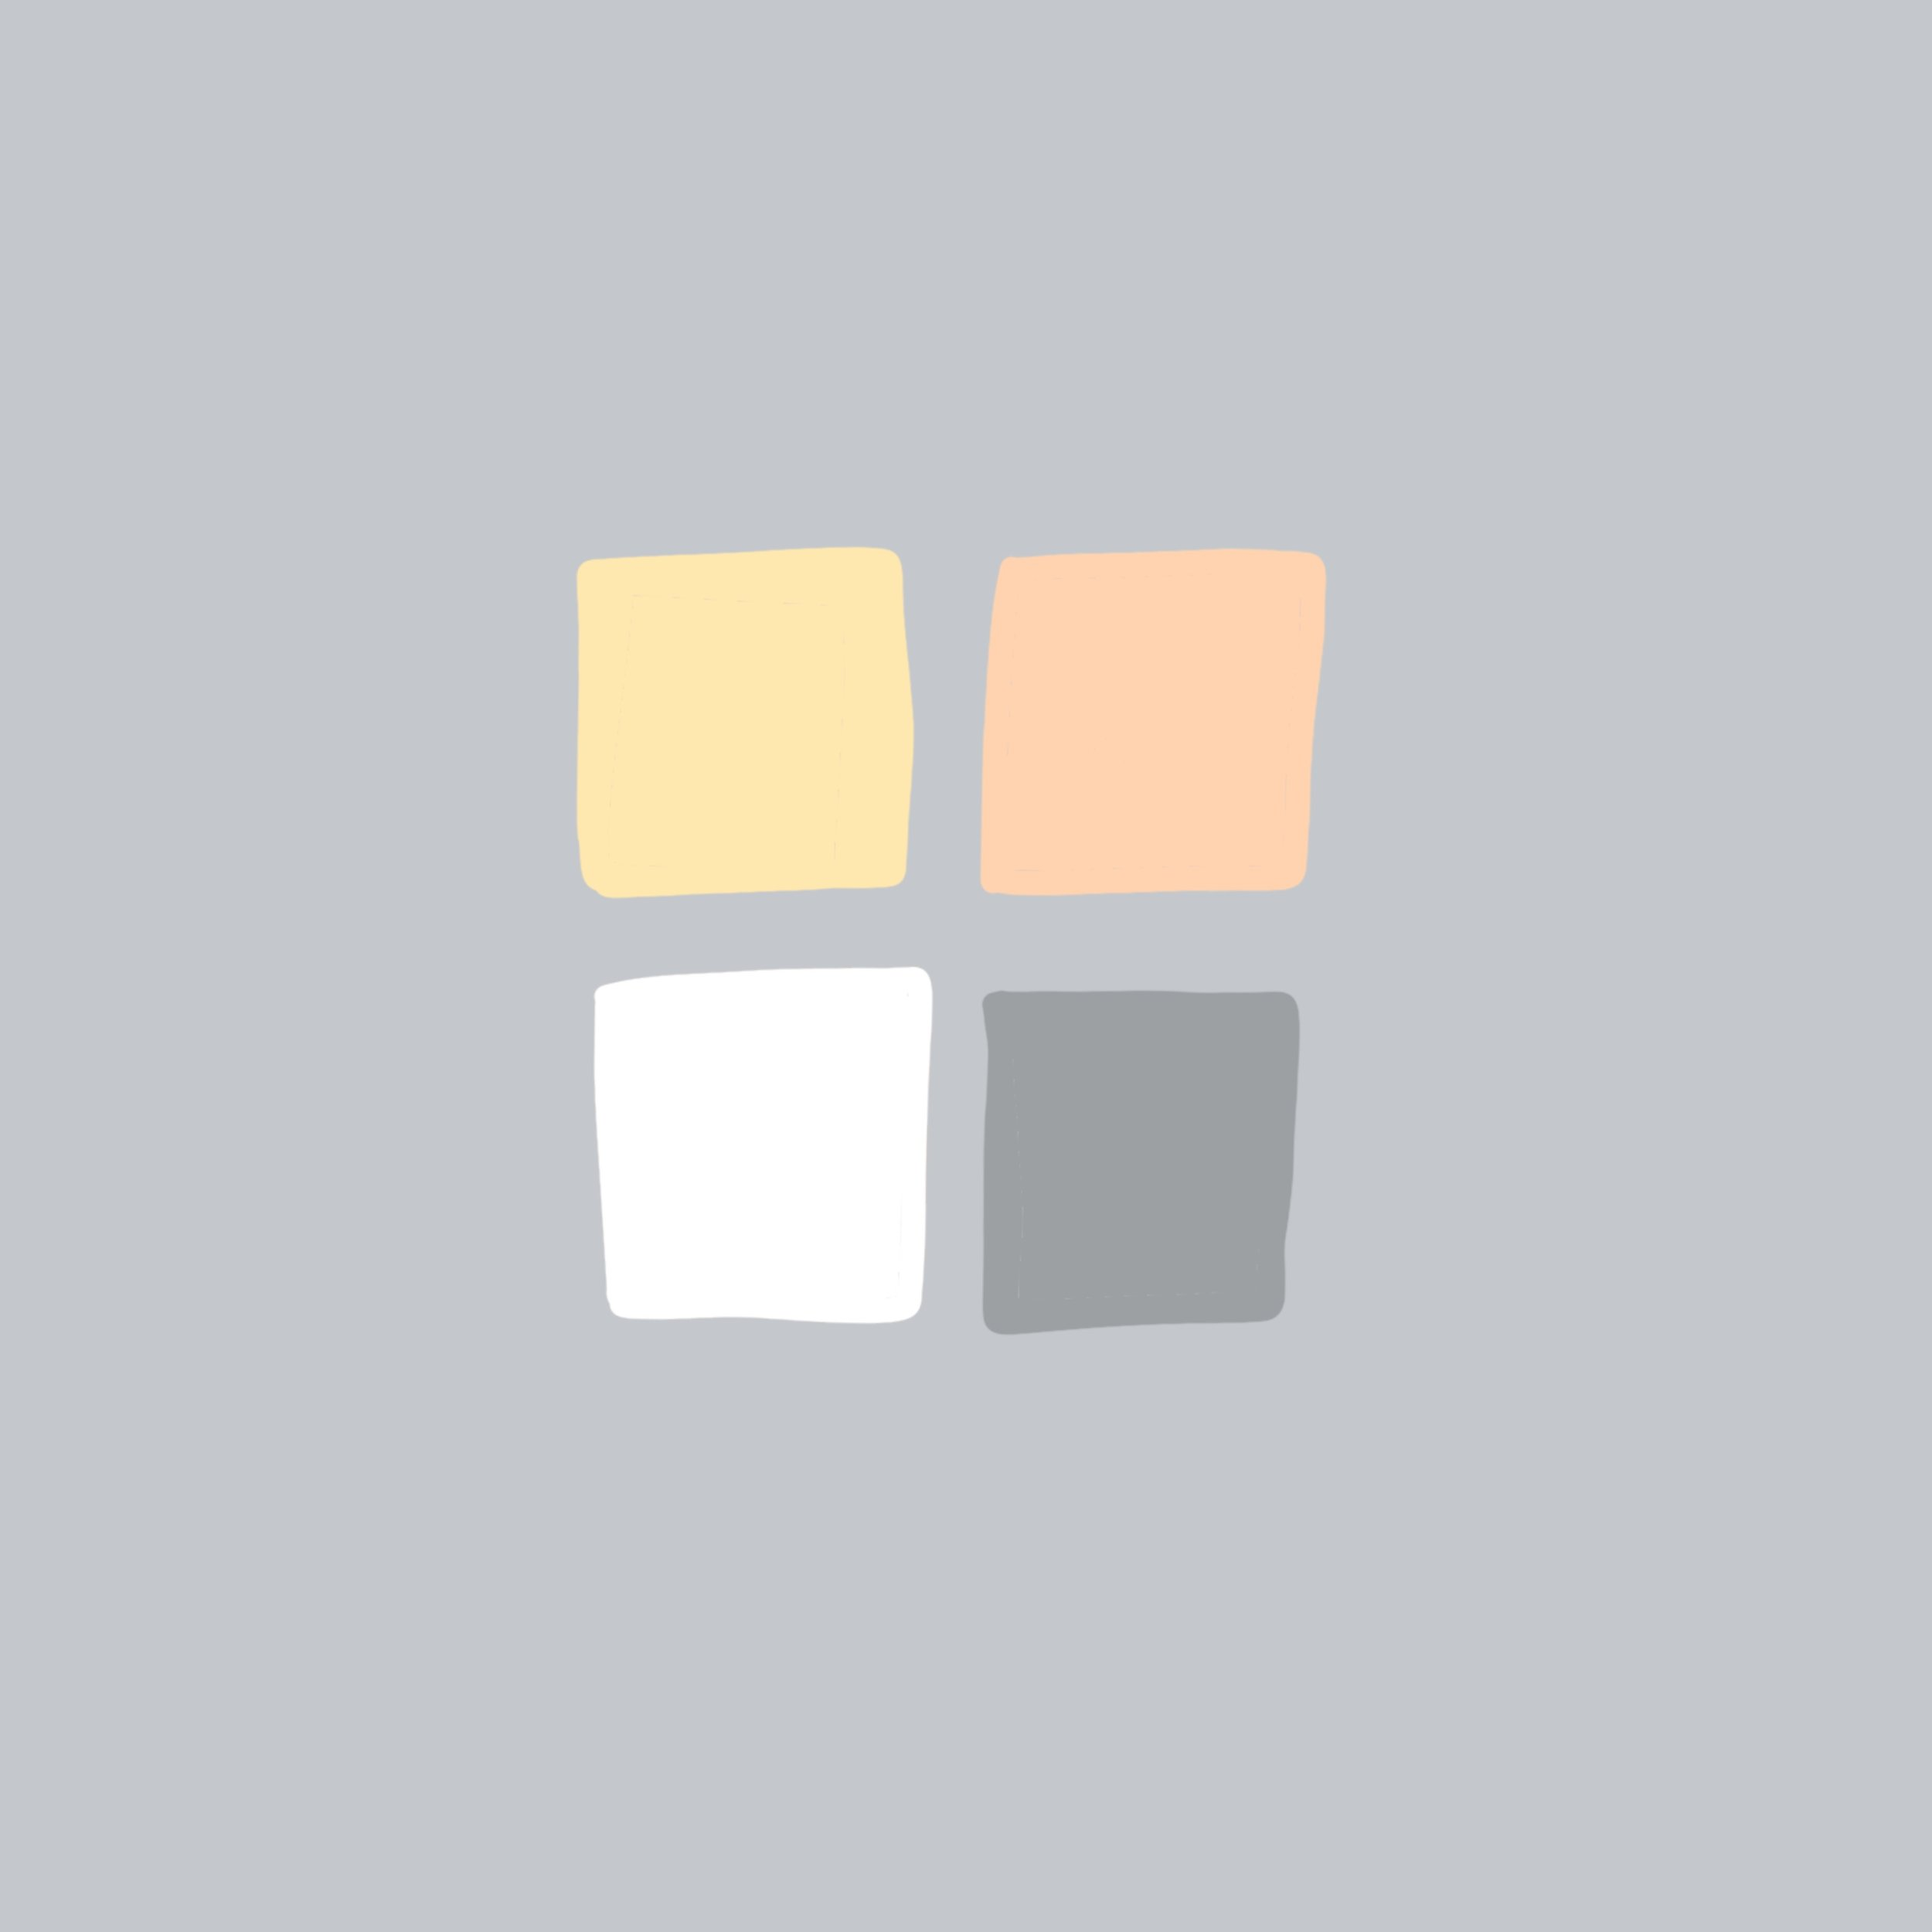 AllisWell_ColorPalette.JPG